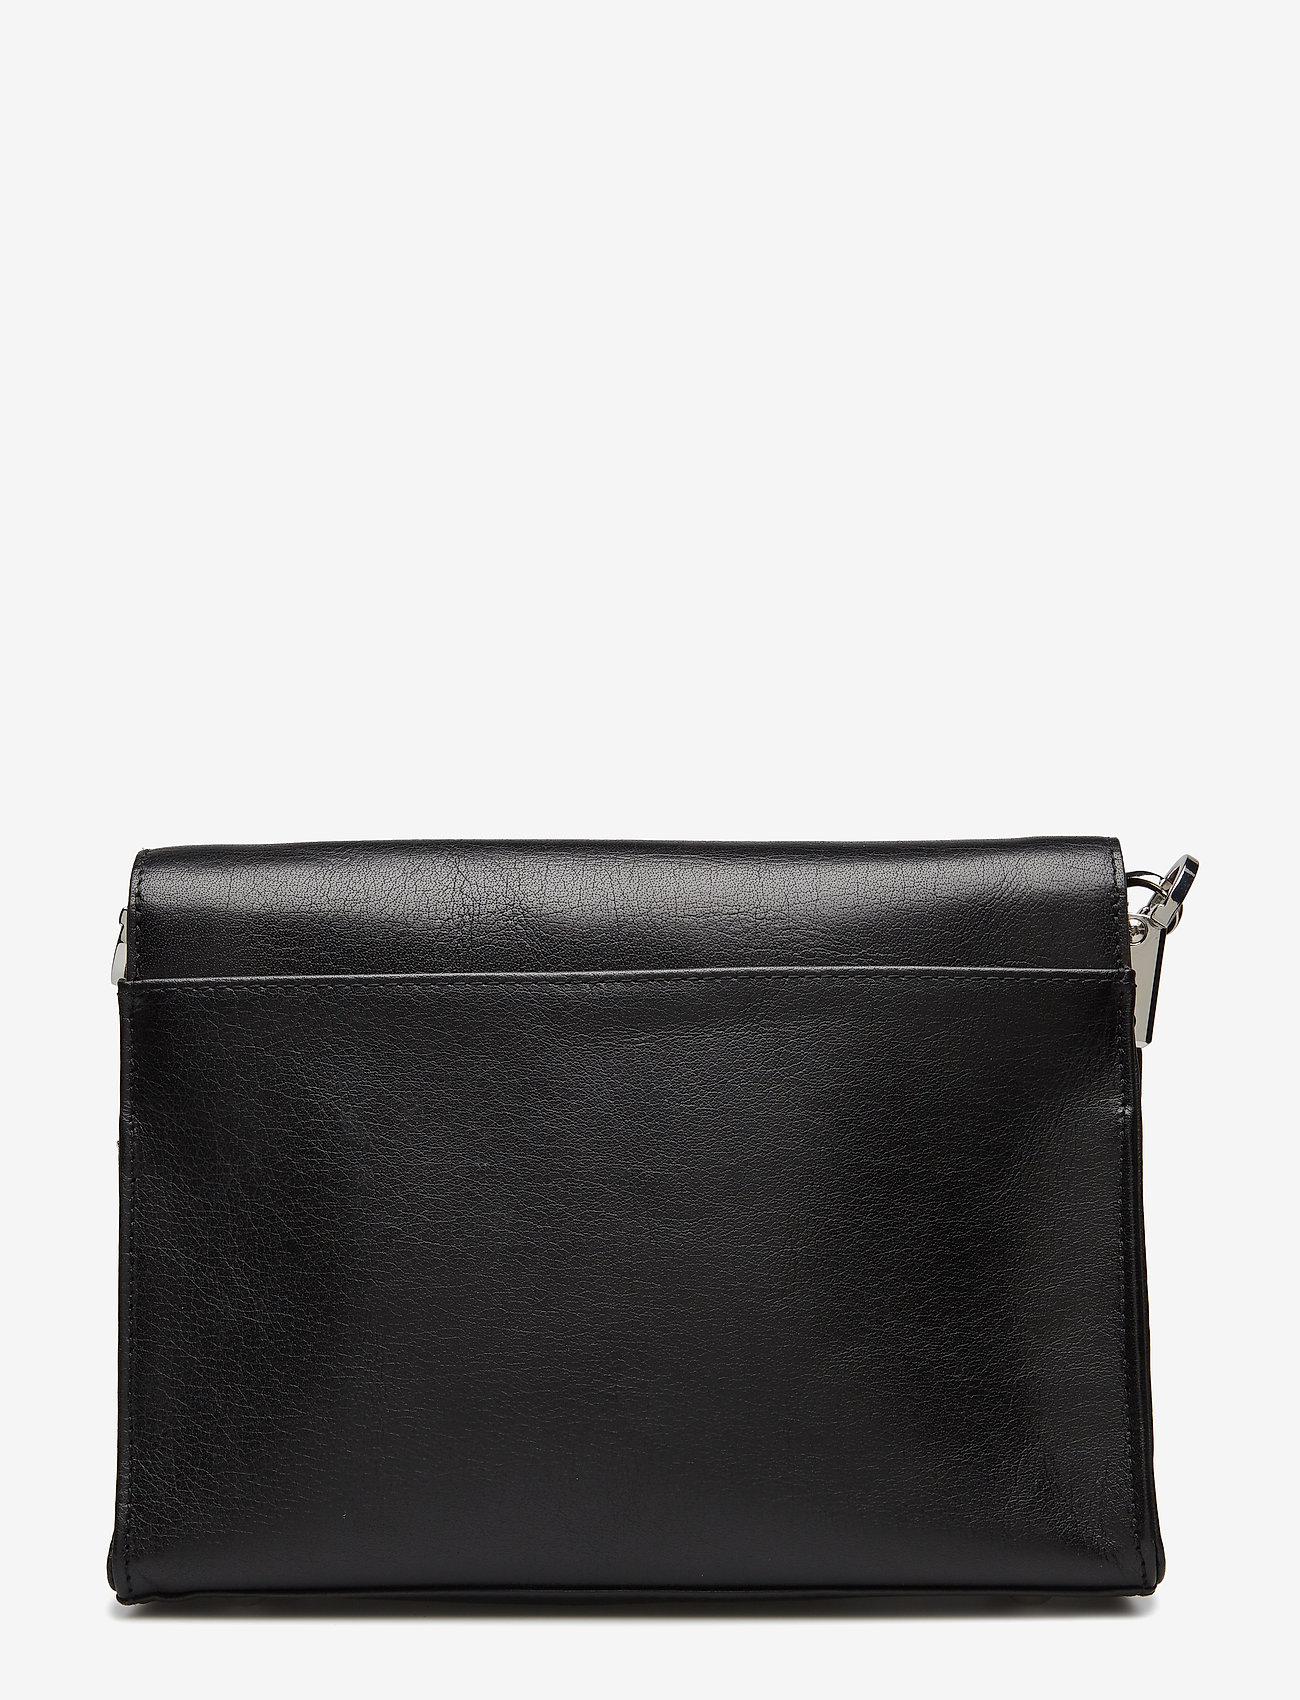 Aria Evening Bag (Black) - Royal RepubliQ hQjLCU